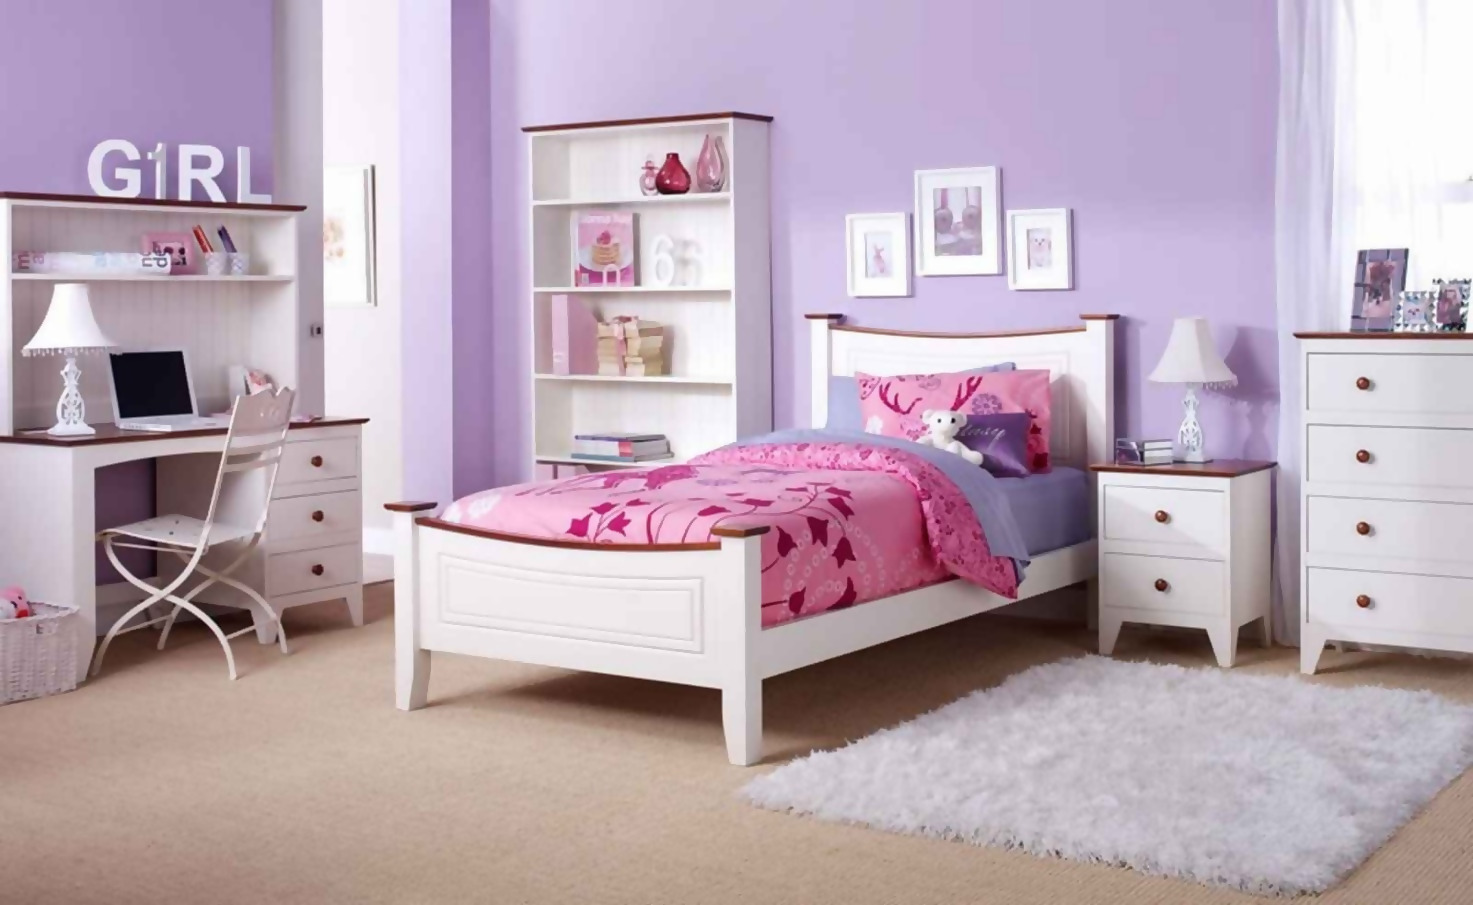 Comfortable Furniture For A Teen Scout Bedroom